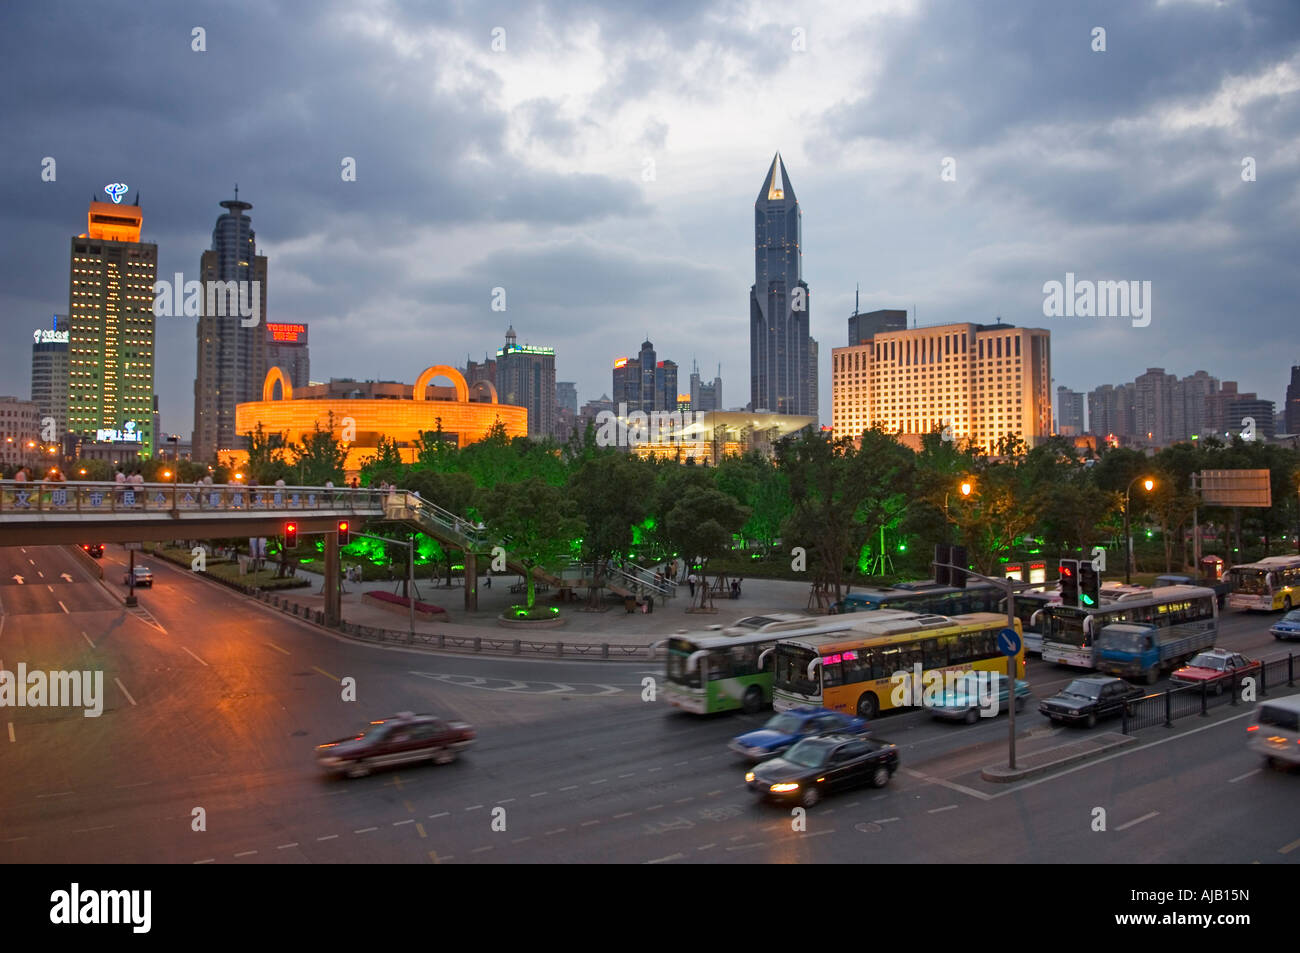 Shanghai Cityscape with Tomorrow Square Tower and People s Square at Night - Stock Image